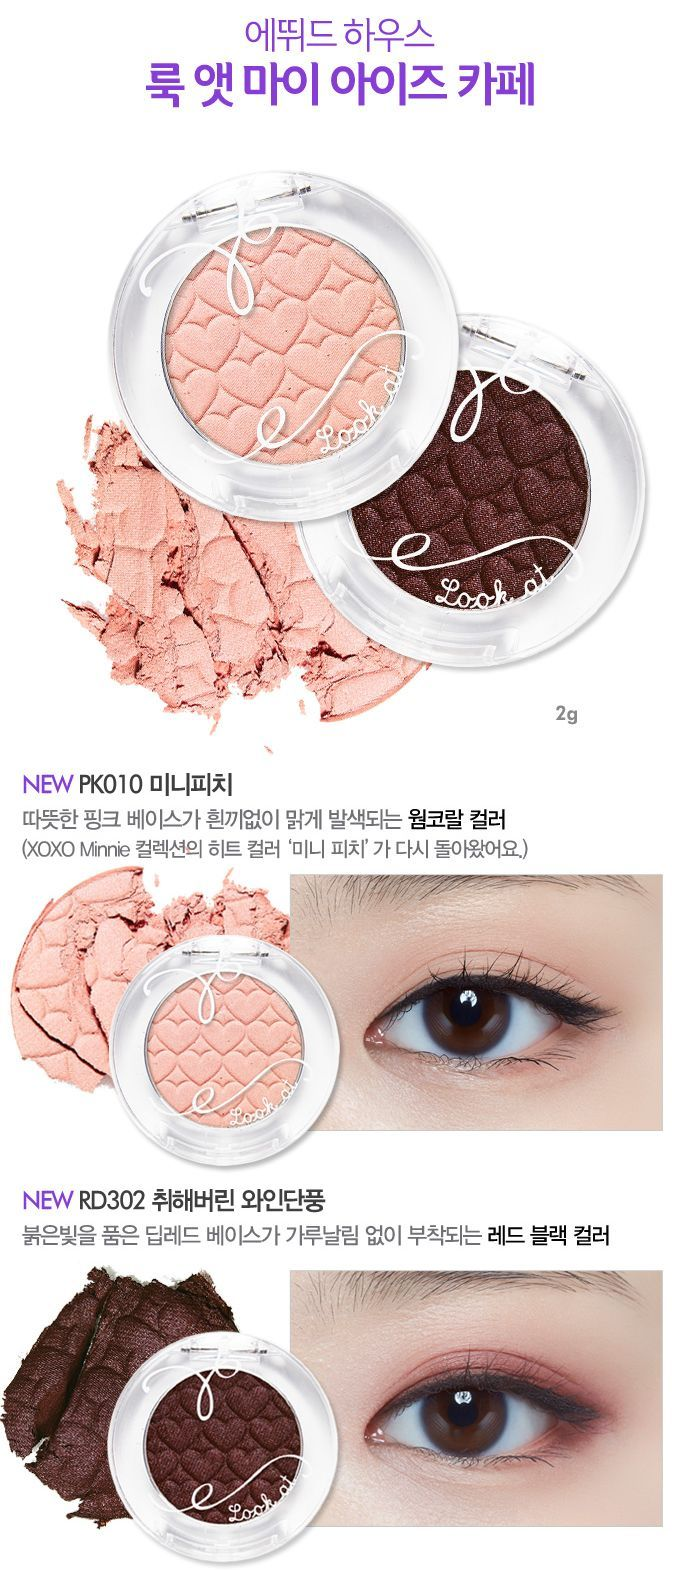 Etude House Look At My Eyes Cafe Eyeshadow